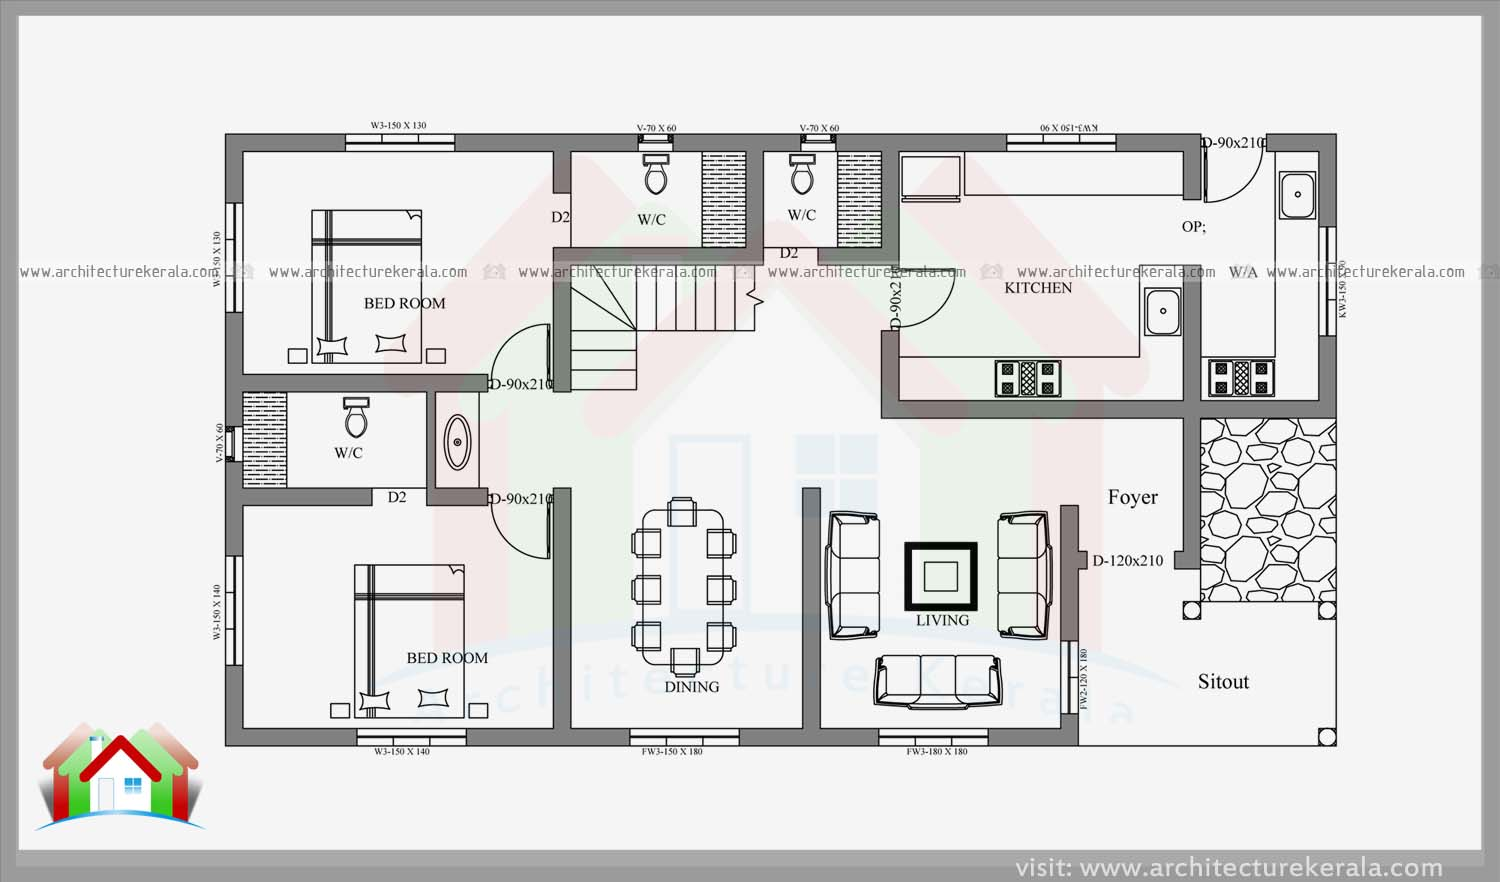 Low Cost 4 Bedroom Kerala House Plan With Elevation: DOUBLE STORIED FOUR BEDROOM HOUSE PLAN AND ELEVATION